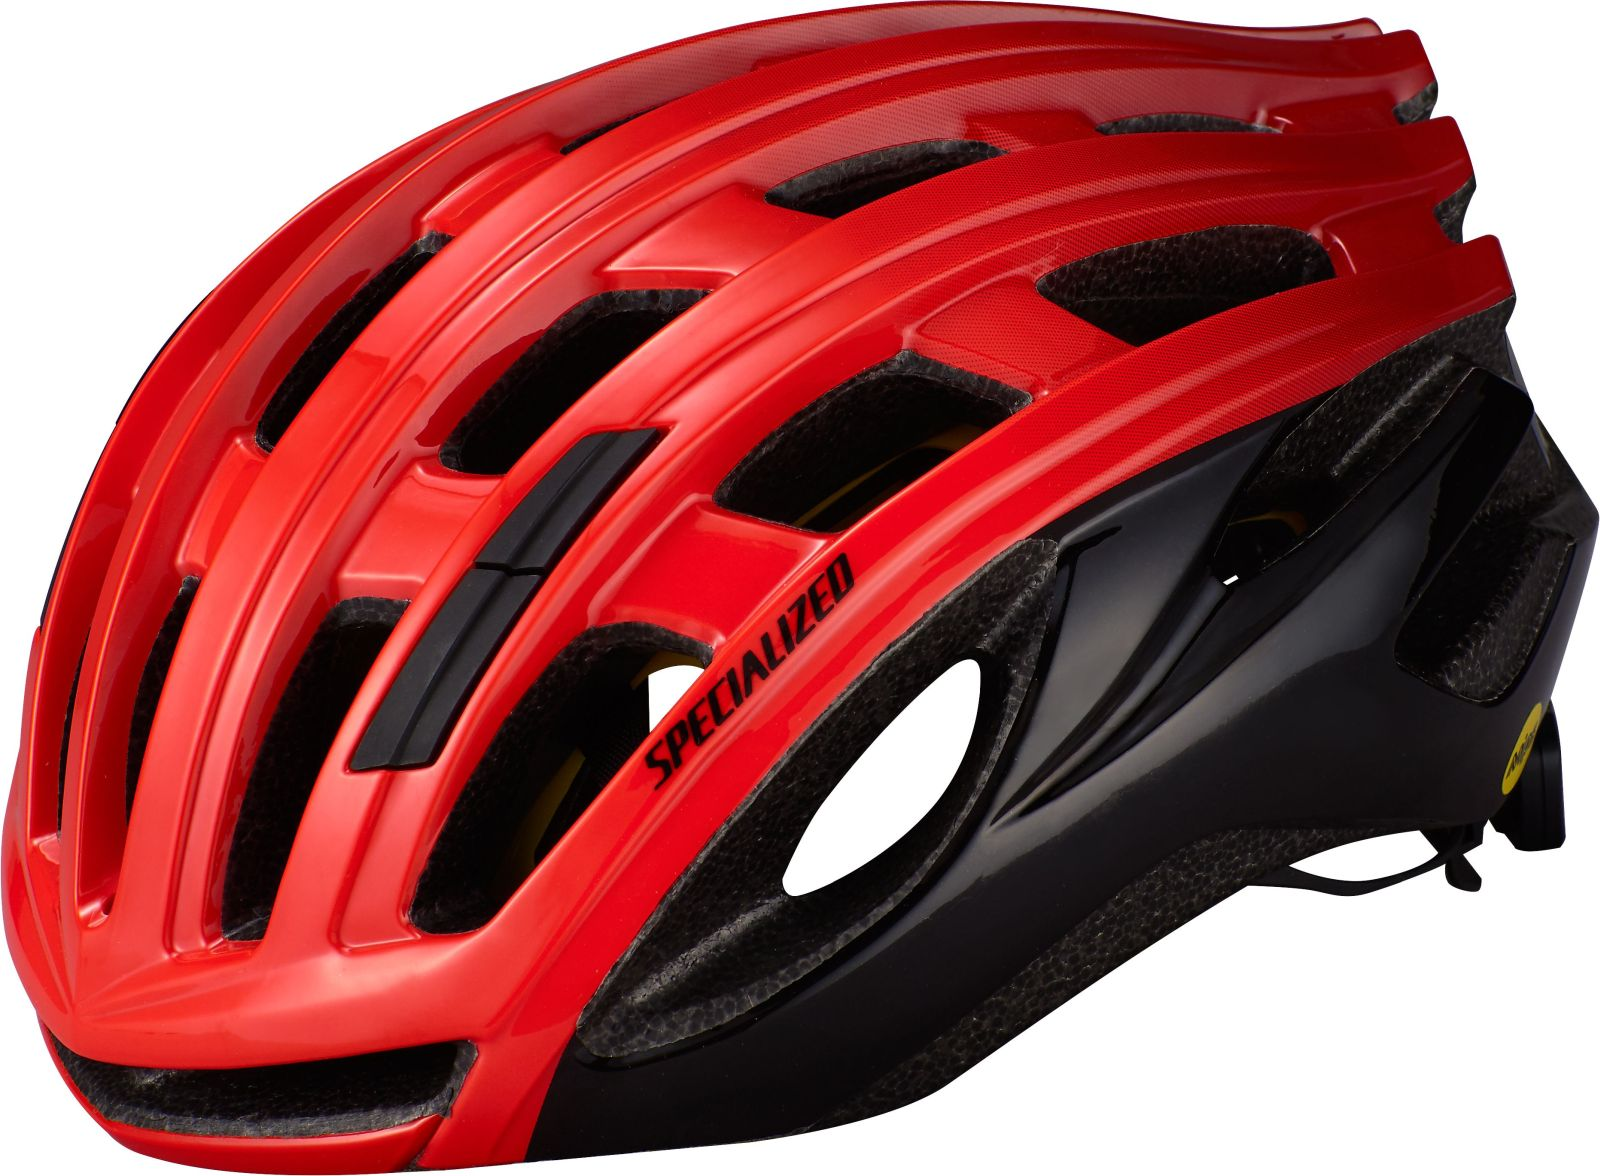 helma Specialized Propero 3 Angi Mips red/crimson